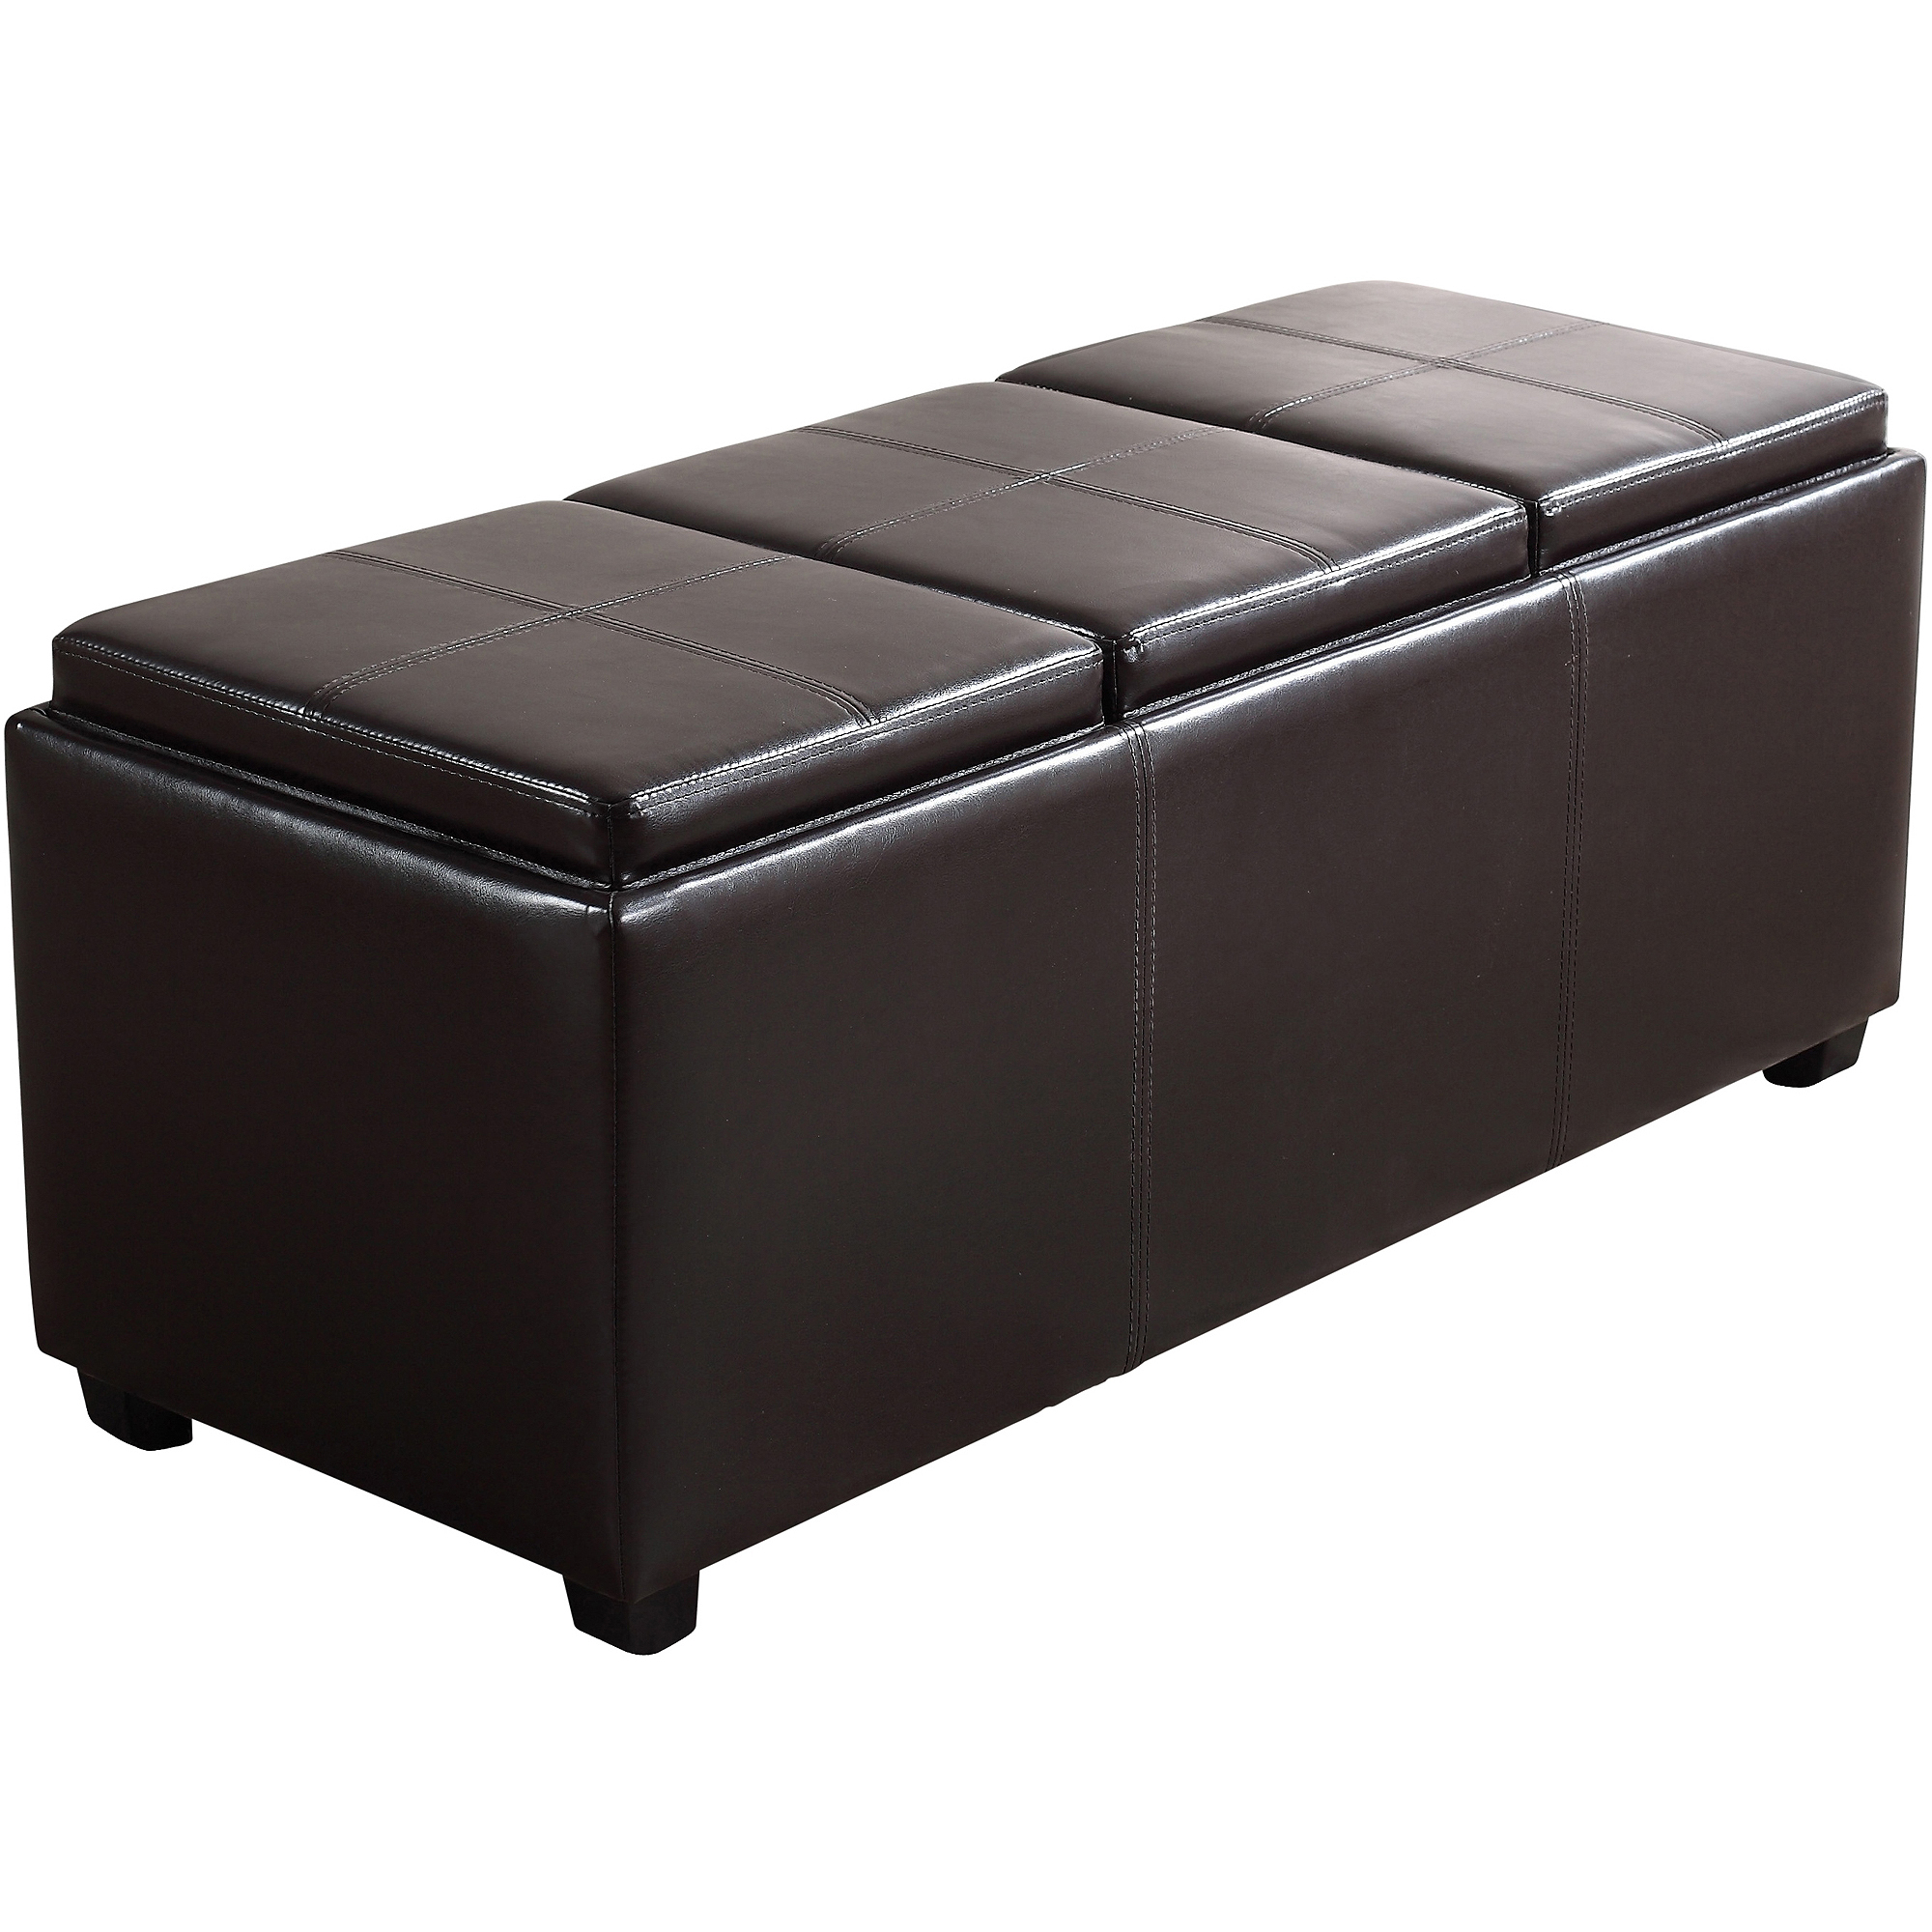 Avalon Extra Large Storage Ottoman with 3 Serving TraysWalmartcom